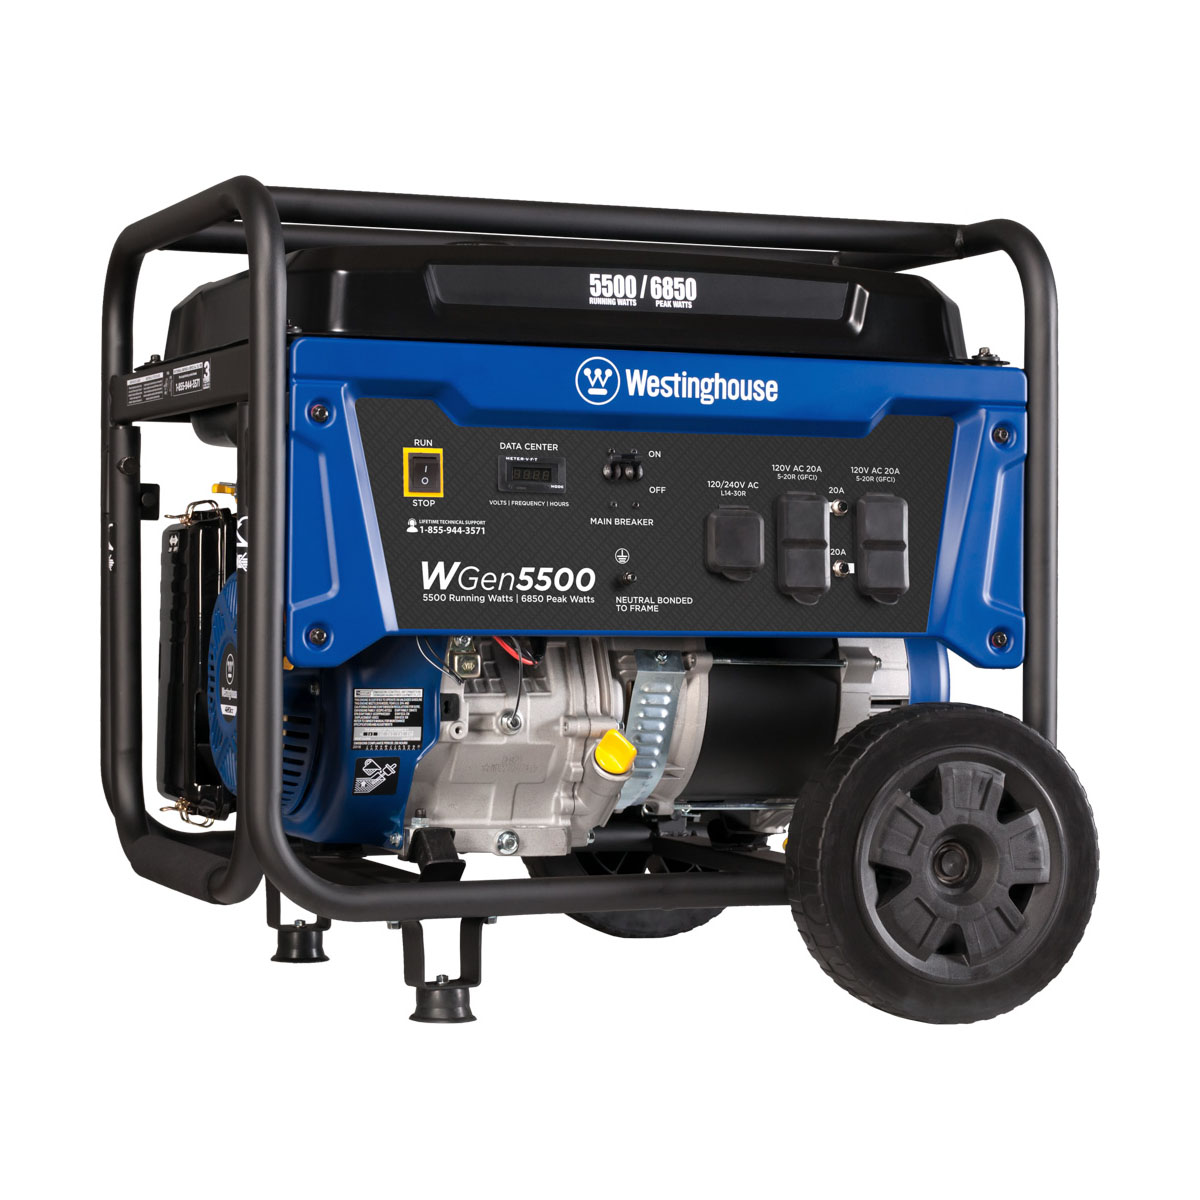 Westinghouse WGen5500 Gas Powered Portable Generator